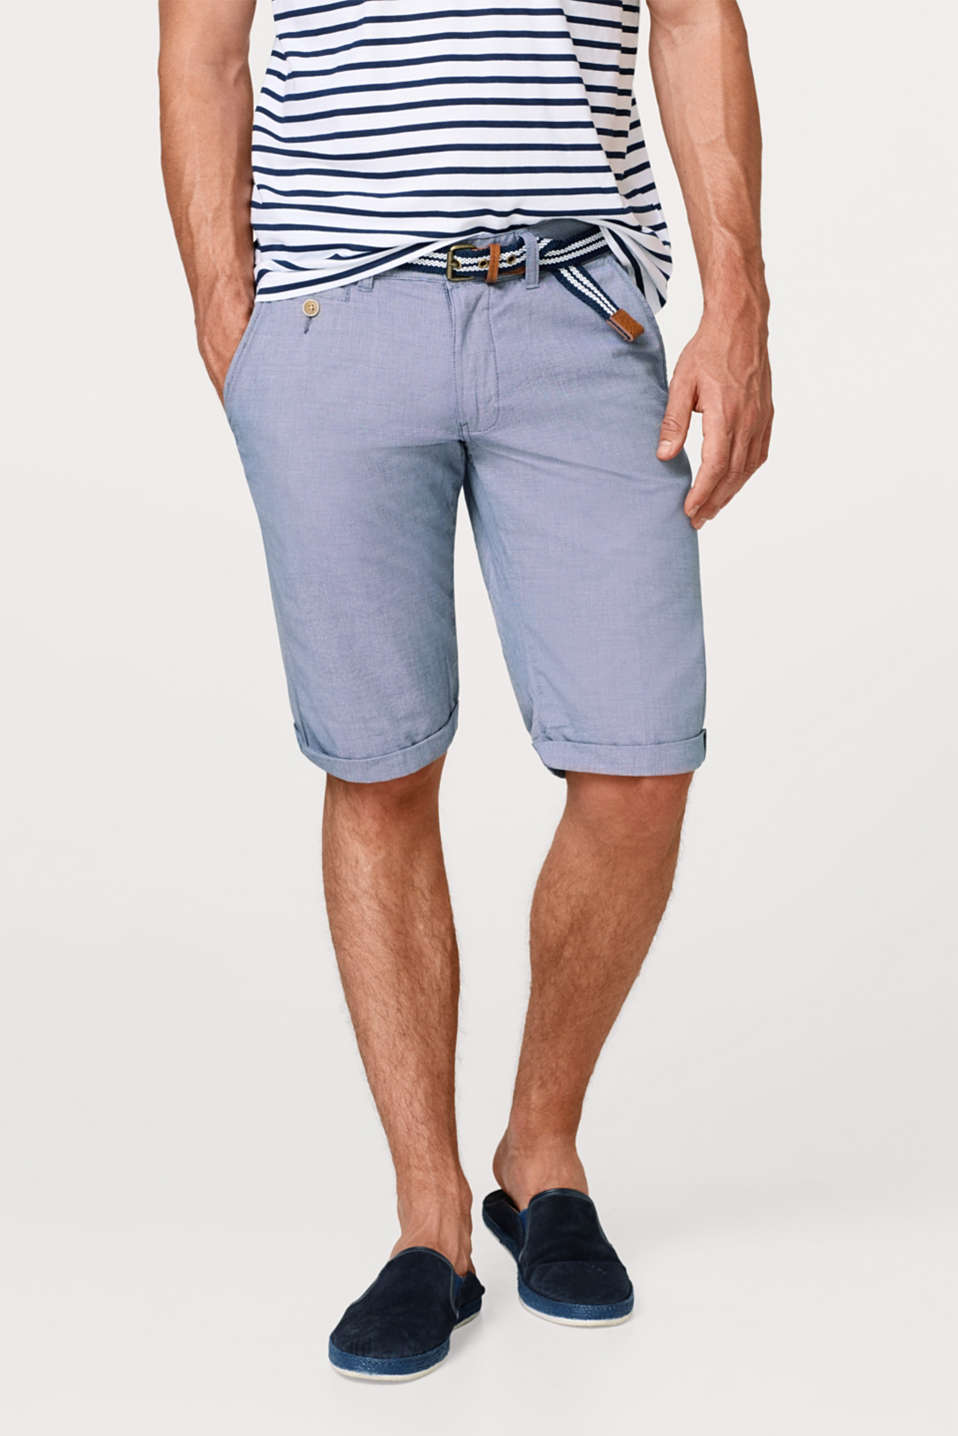 Esprit - Bermuda shorts with a belt, in 100% cotton